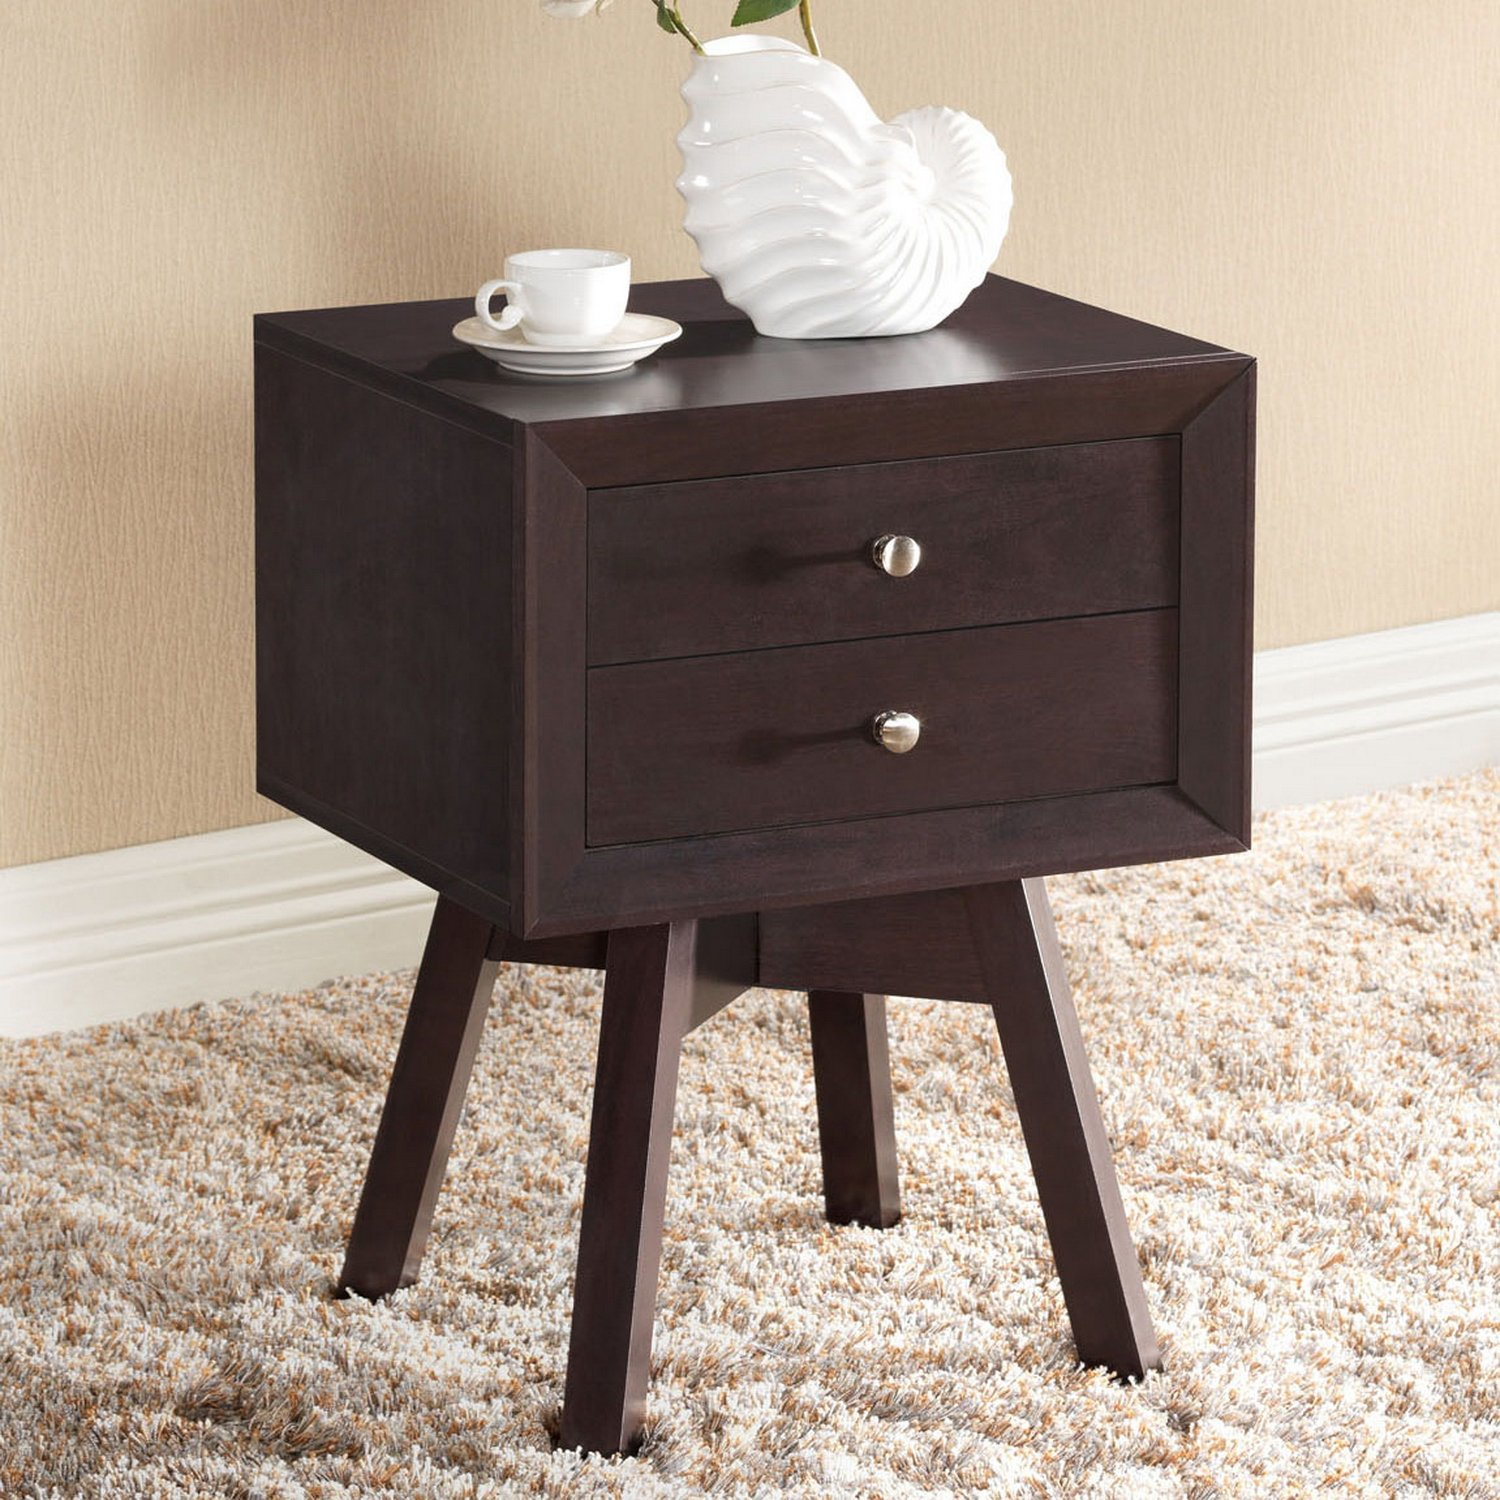 amazoncom baxton studio warwick modern accent table and nightstand brown kitchen dining - Modern Nightstand